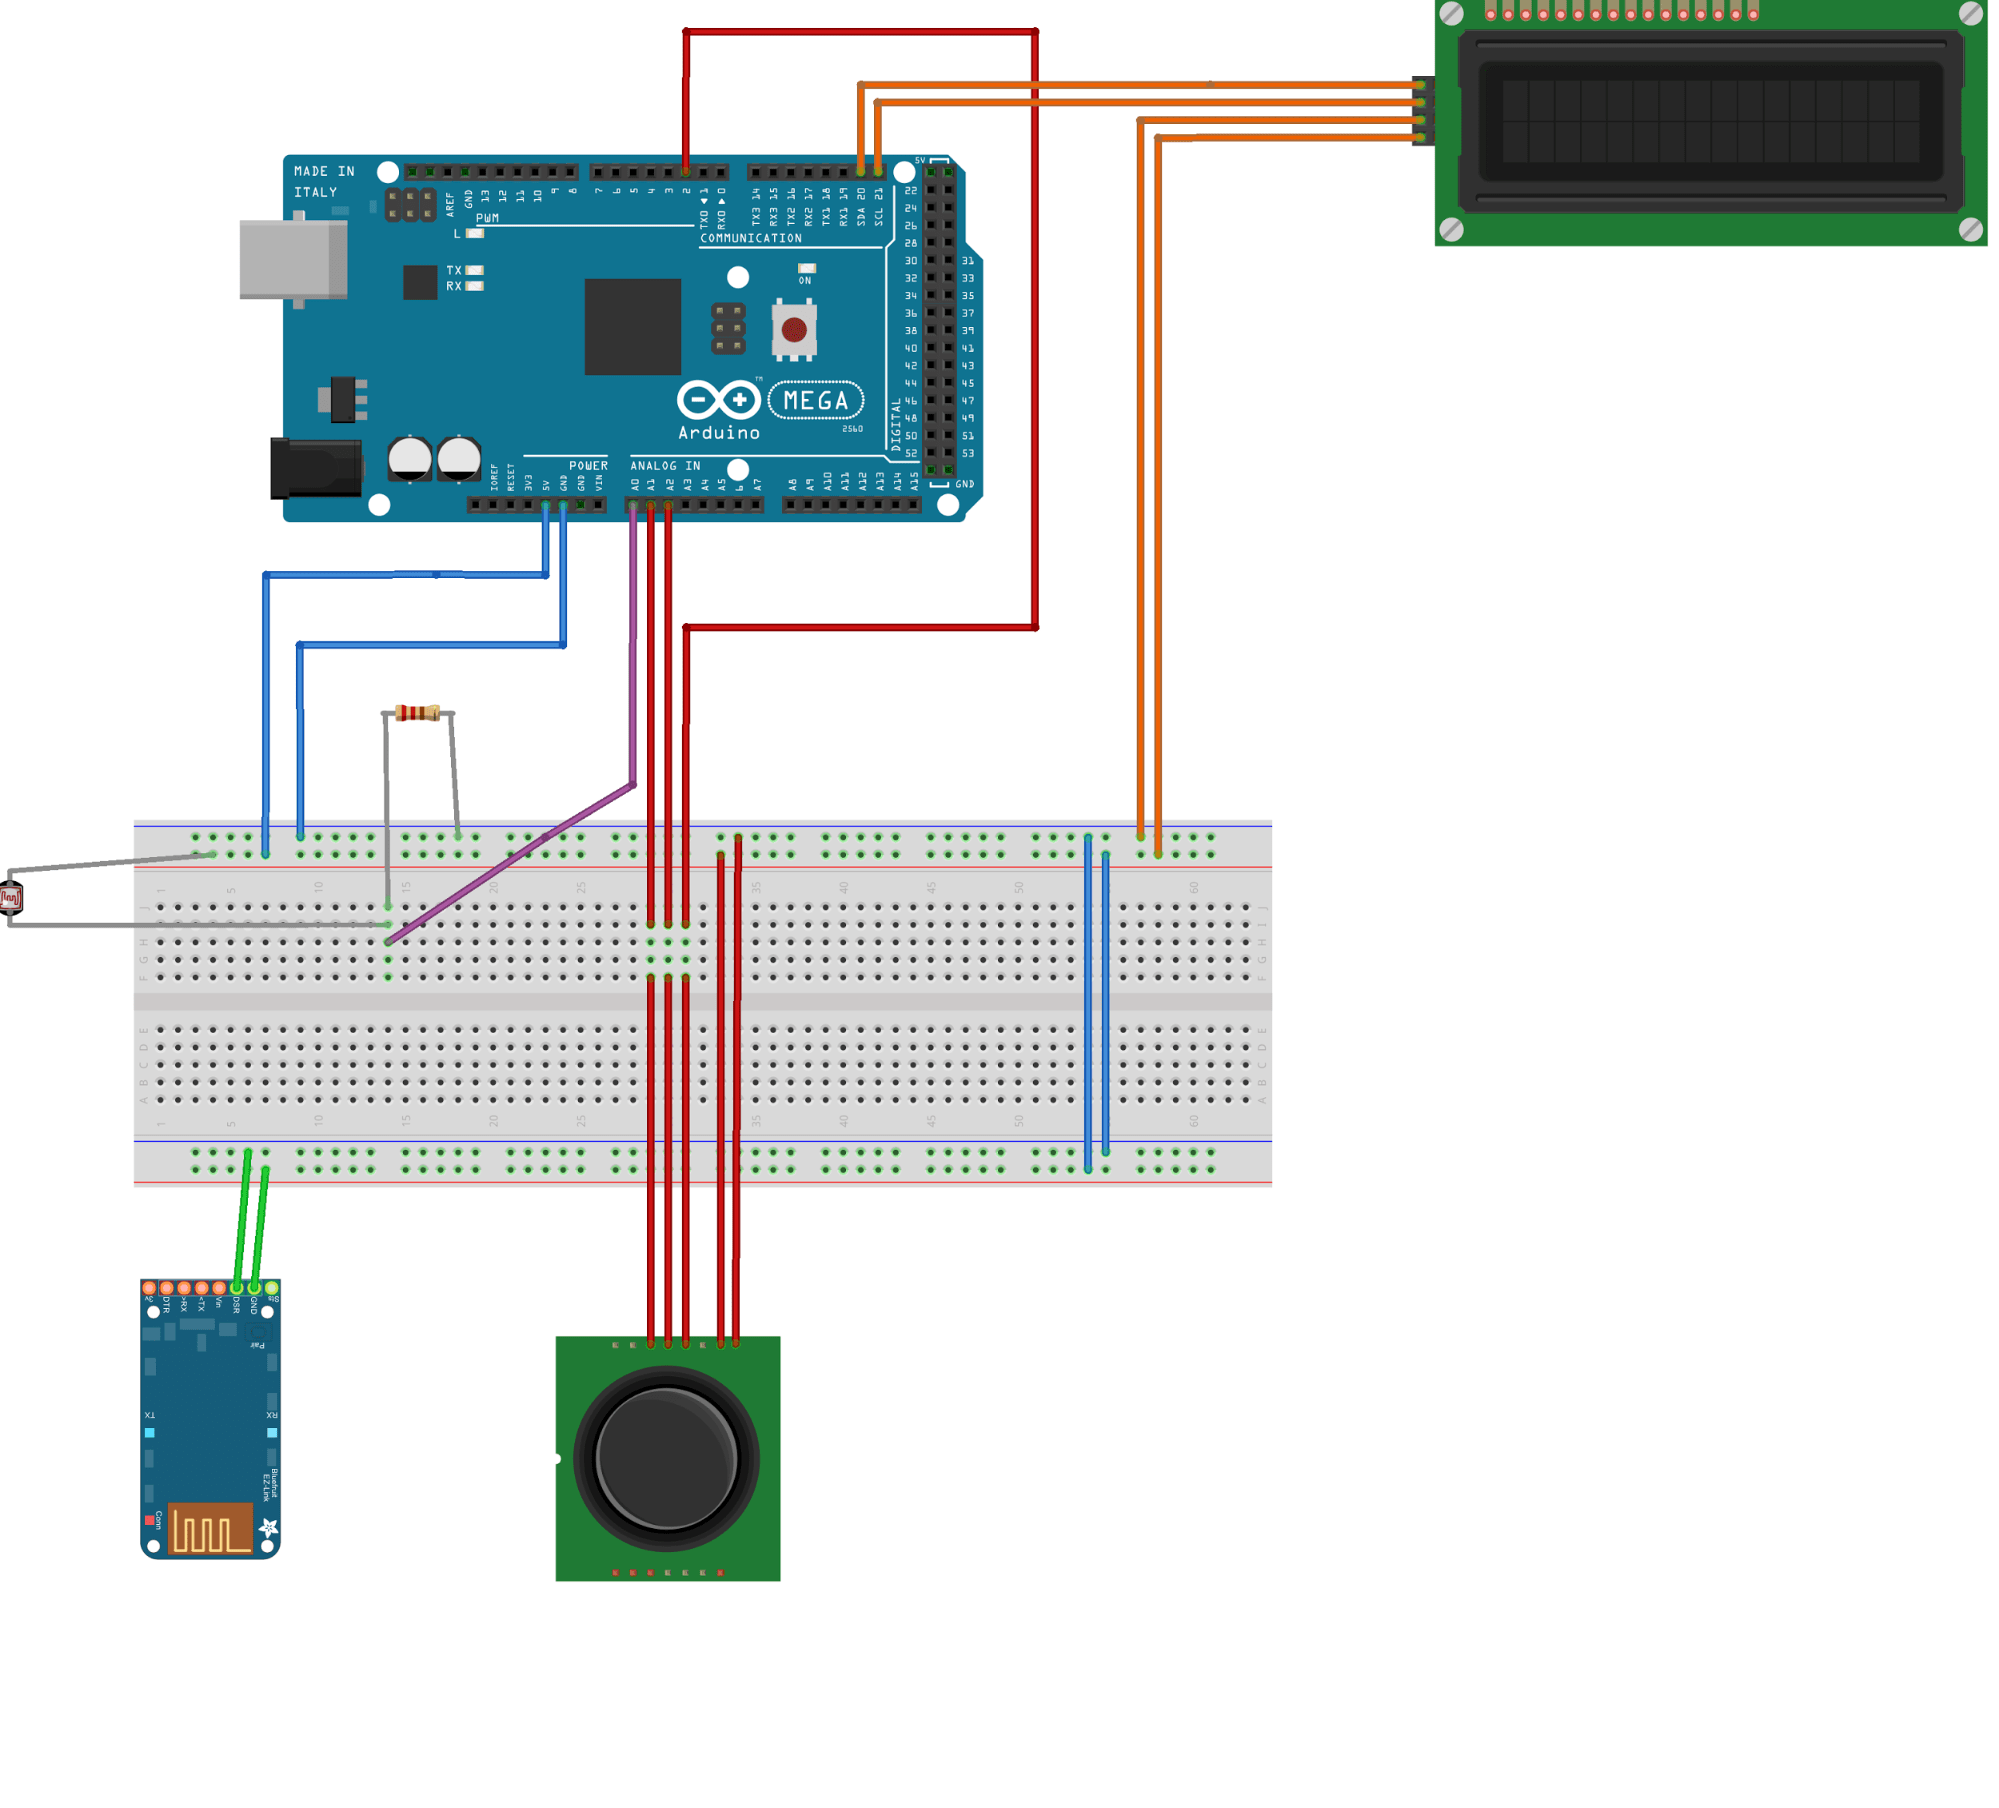 hight resolution of  and the lcd display which displays the position of the joystick and the status of the light sensor the wiring diagram for this station can be found on